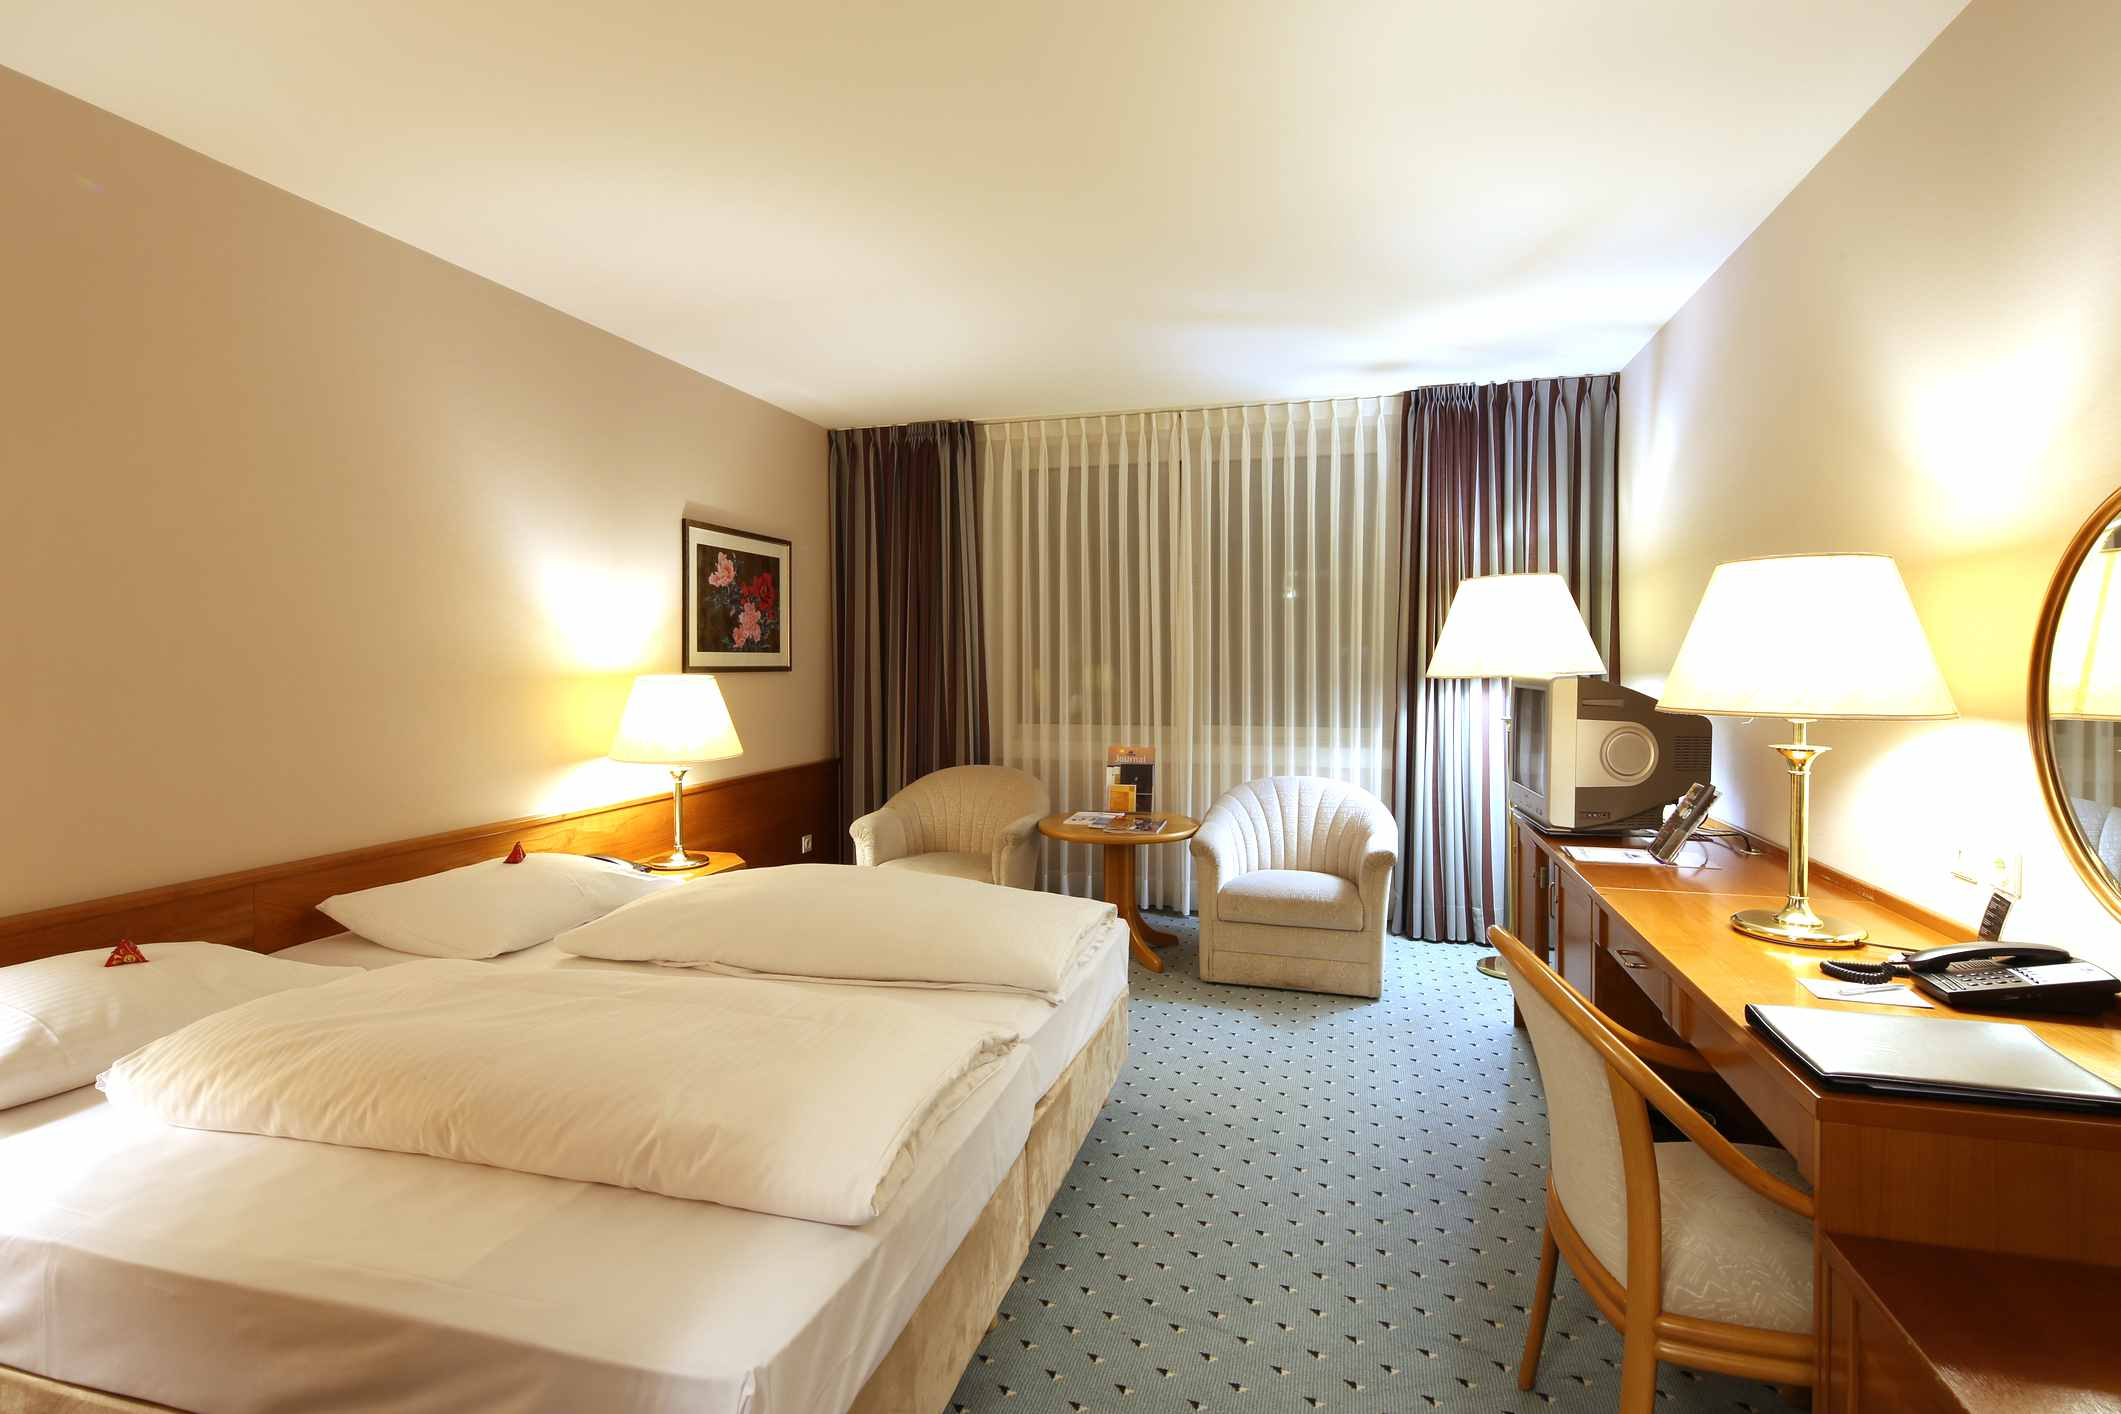 5 essentials travelers should expect in a budget hotel